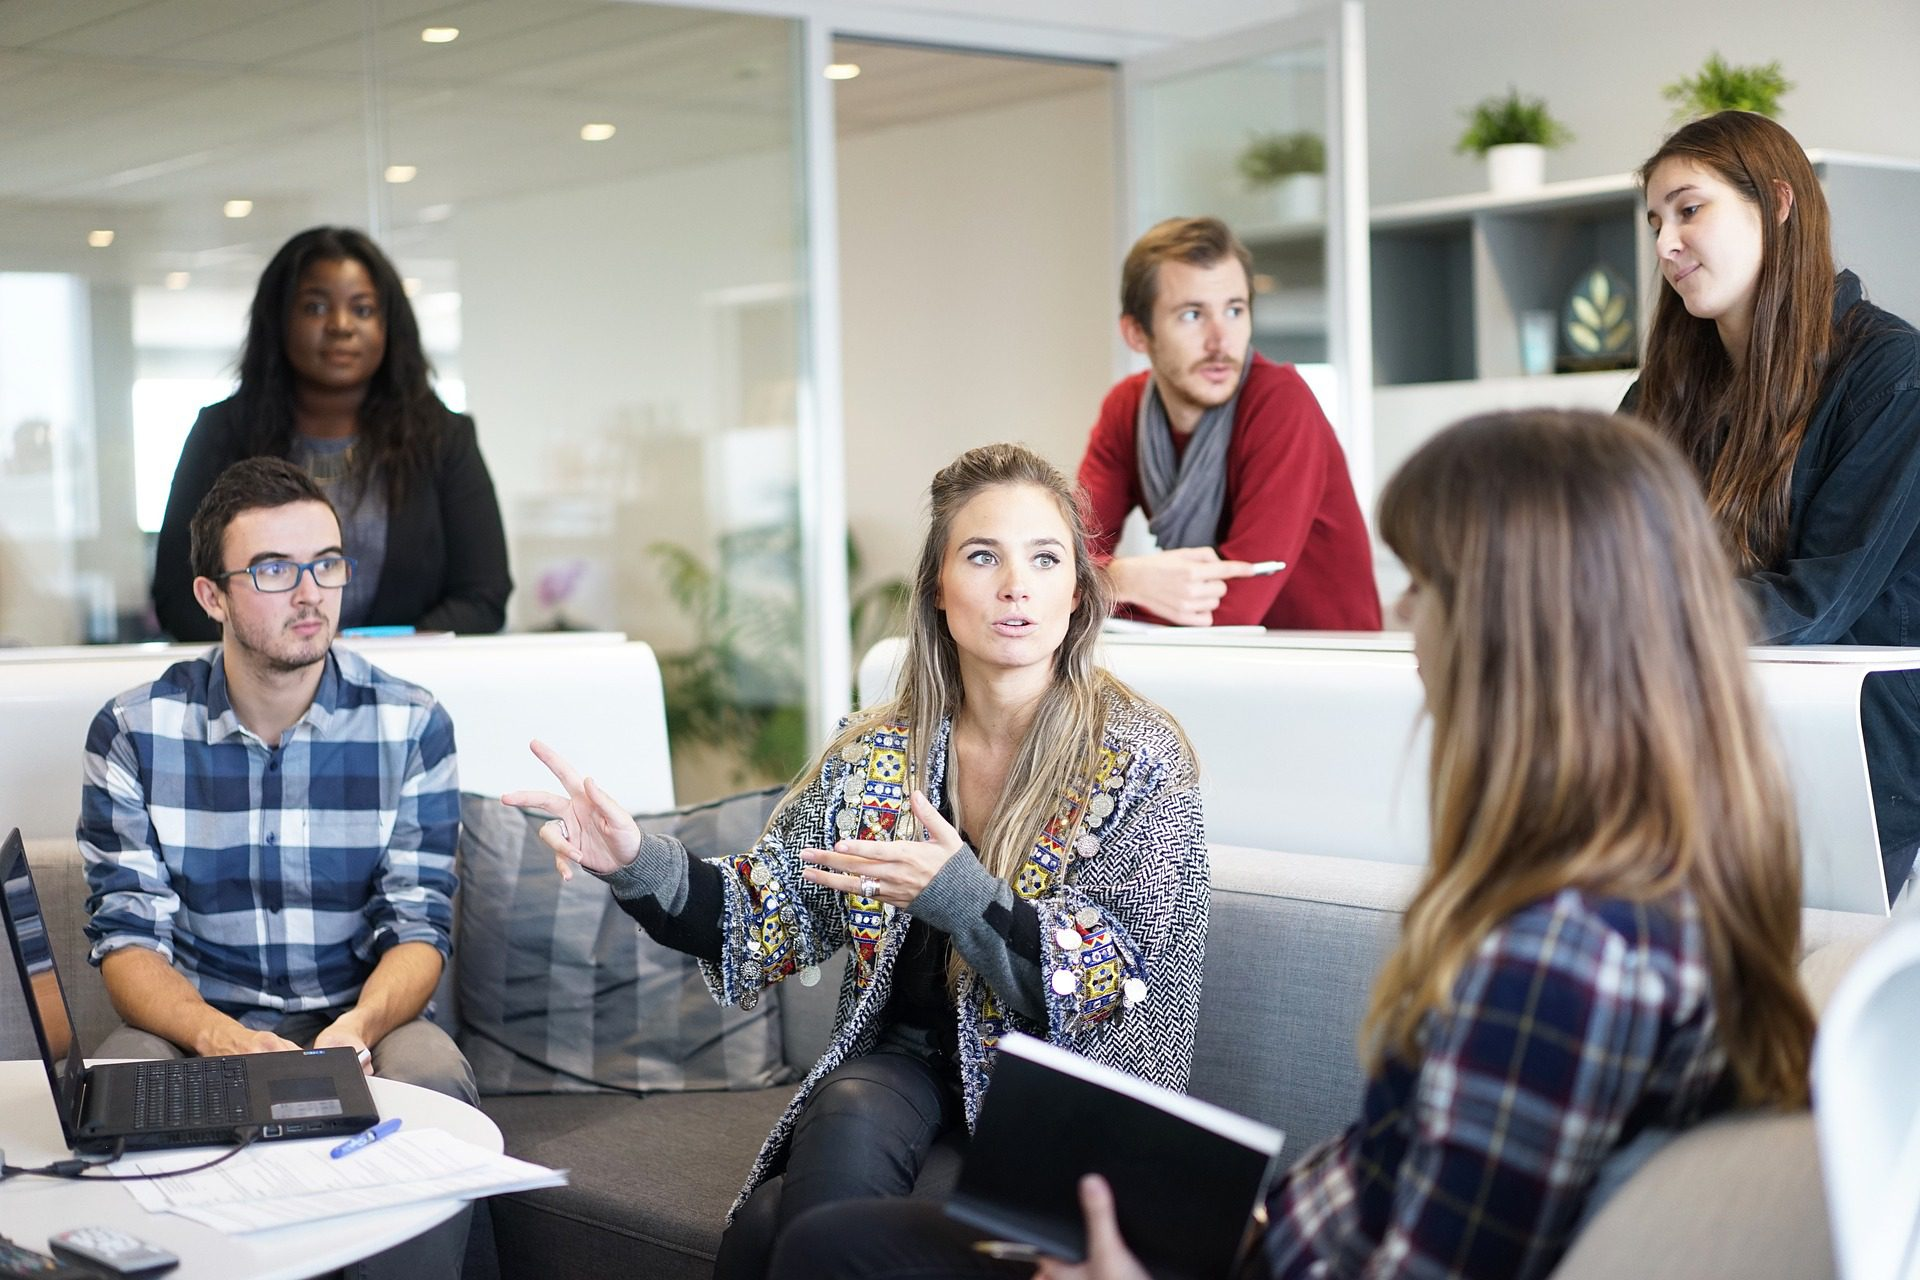 group of 6 people in a meeting